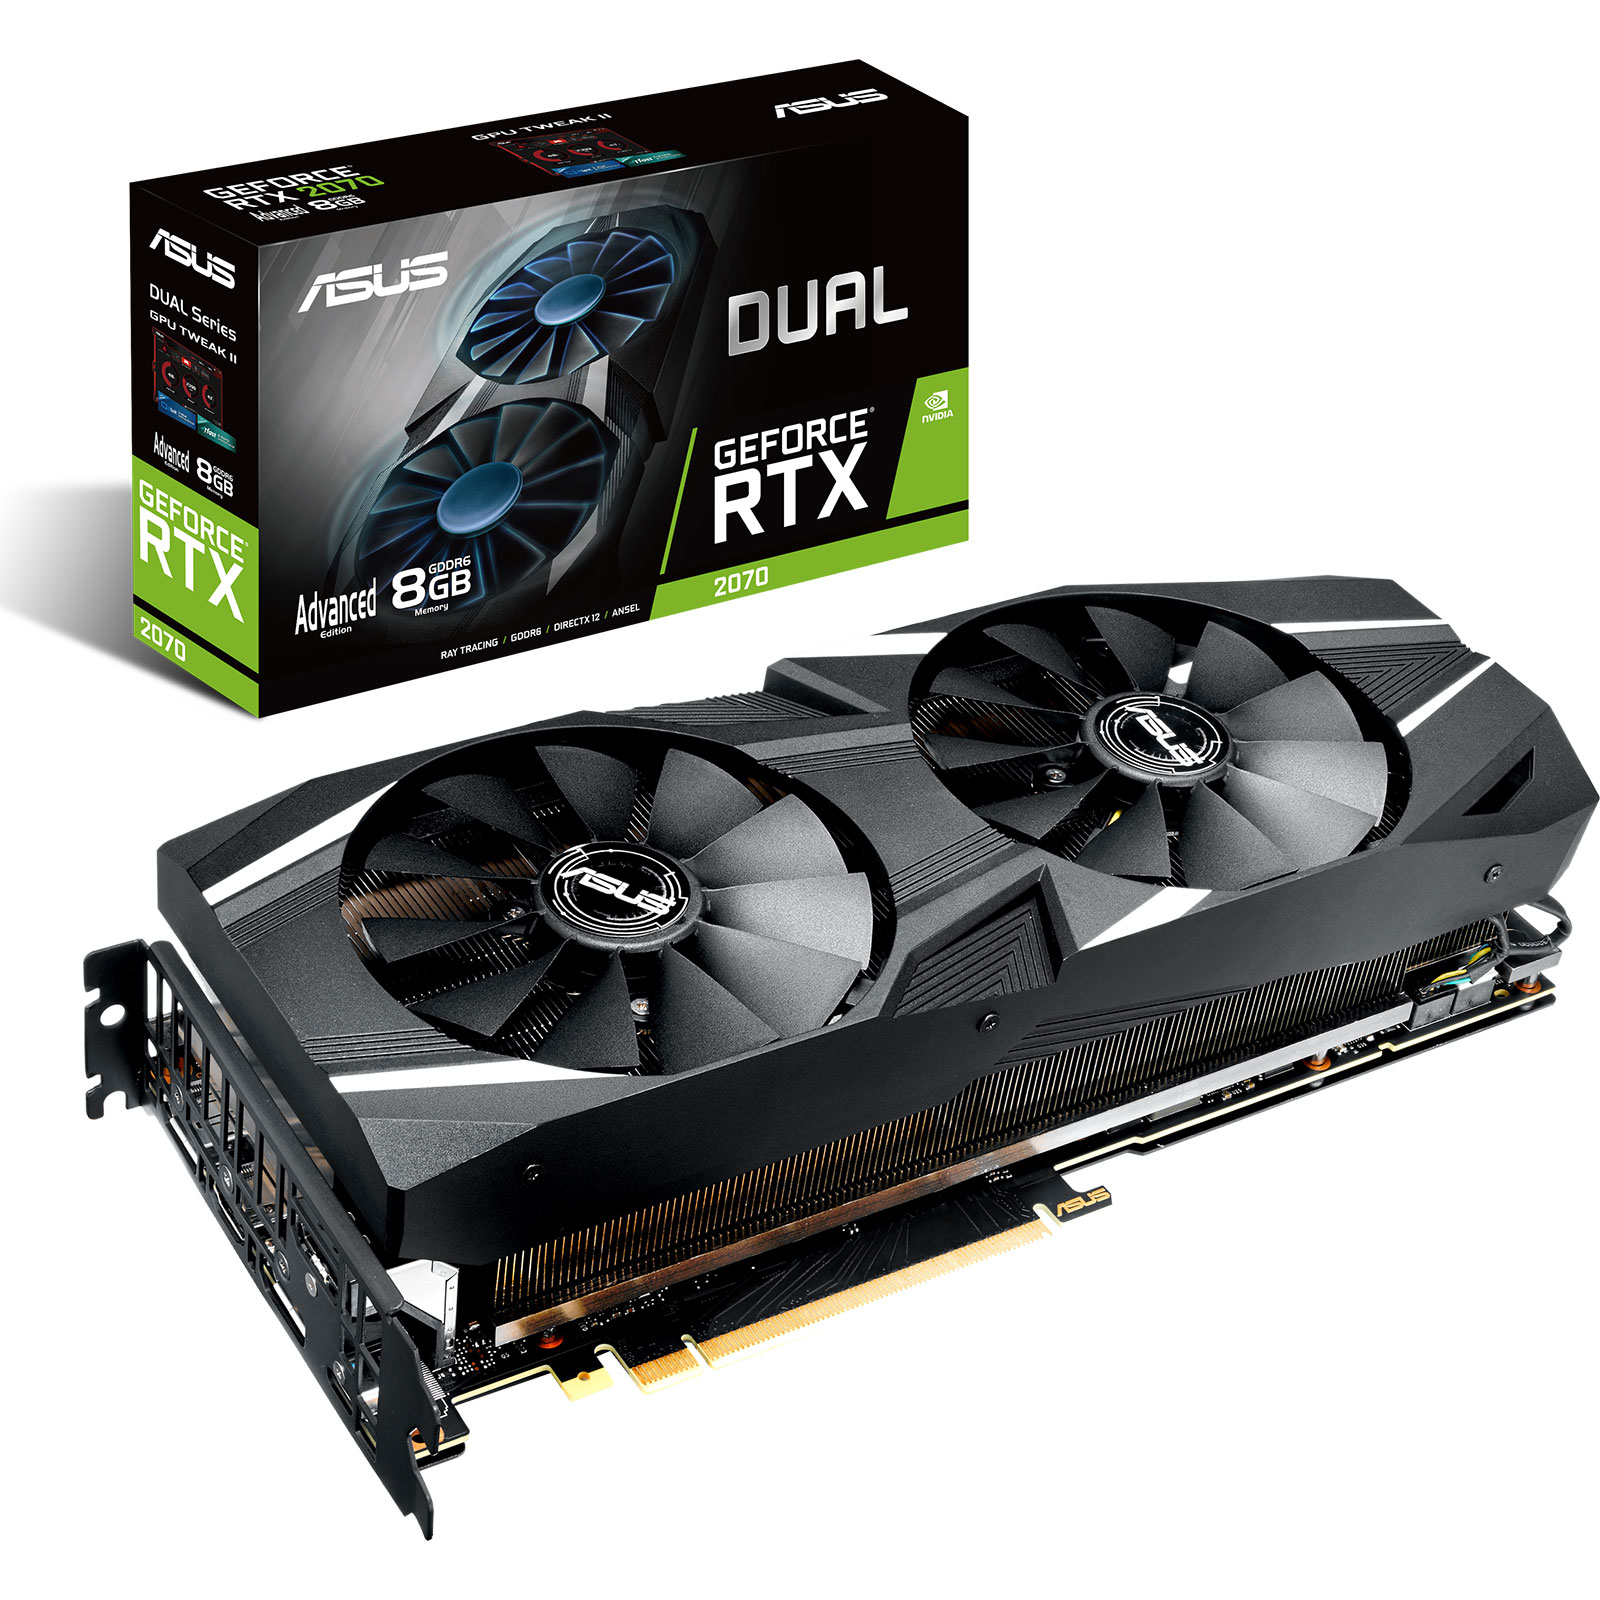 Carte graphique ASUS GeForce RTX 2070 - DUAL-RTX2070-8G 8 Go GDDR6 - HDMI/Tri DisplayPort/USB Type-C - PCI Express (NVIDIA GeForce RTX 2070)